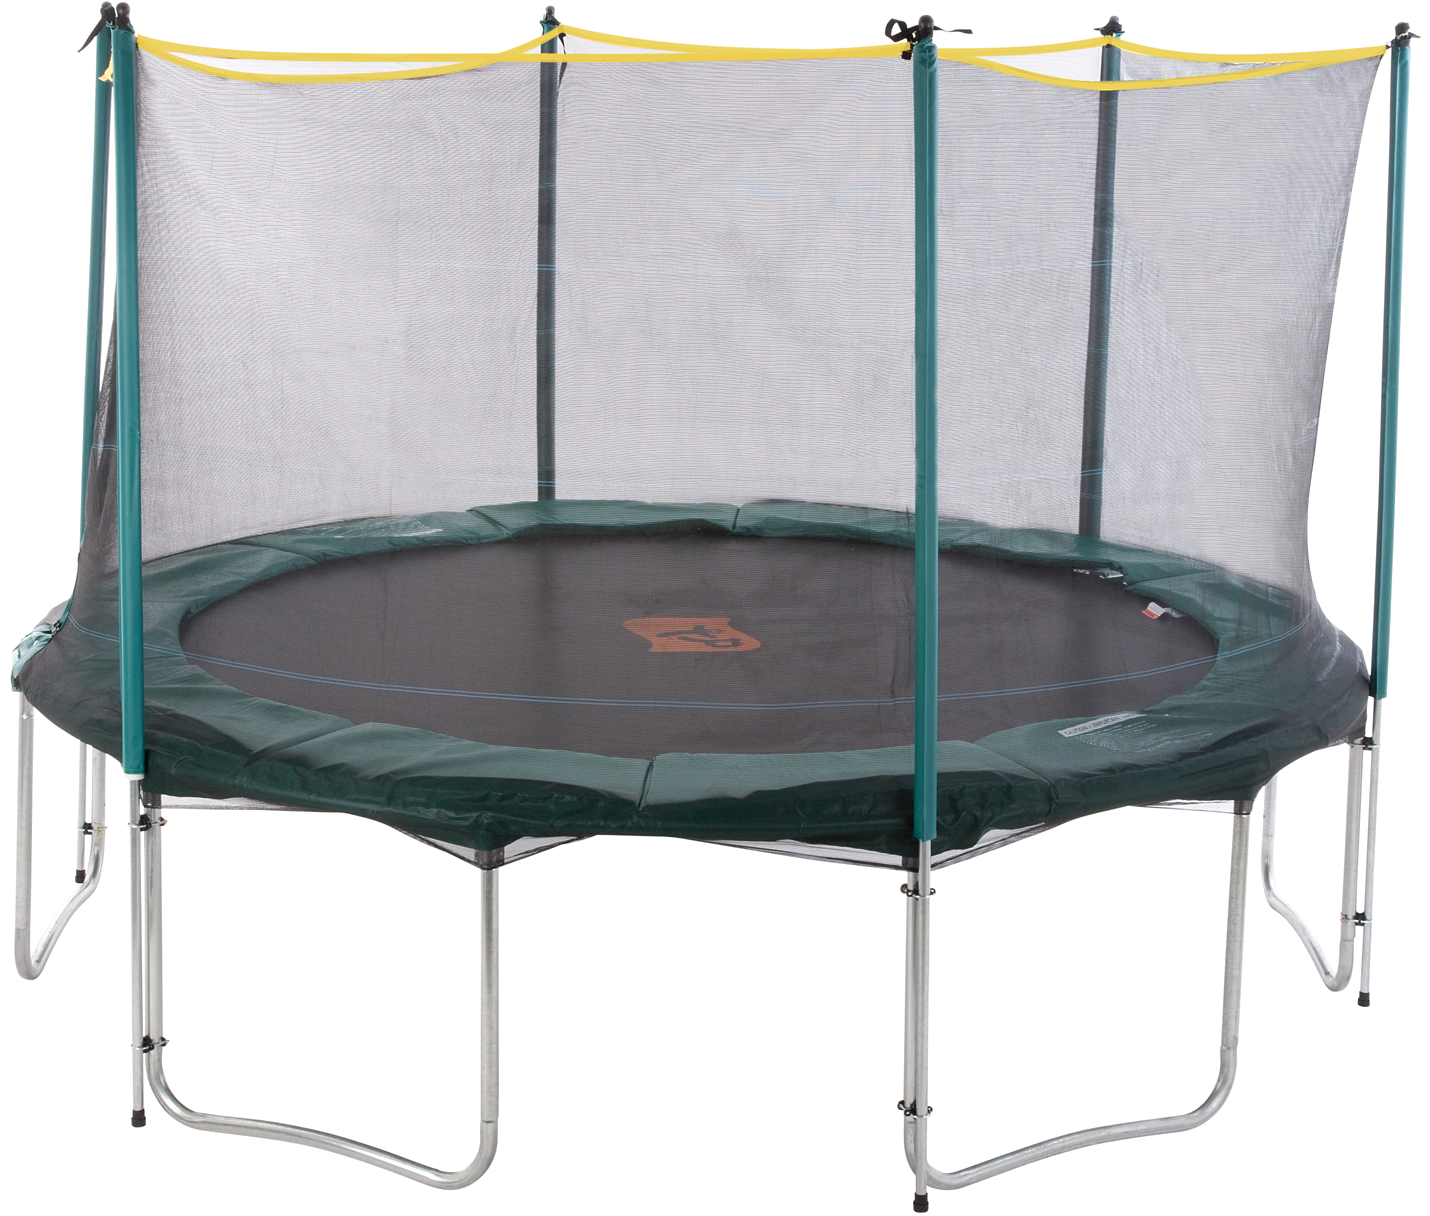 12ft 6 Legged Trampoline Enclosure - Trampoline HD PNG